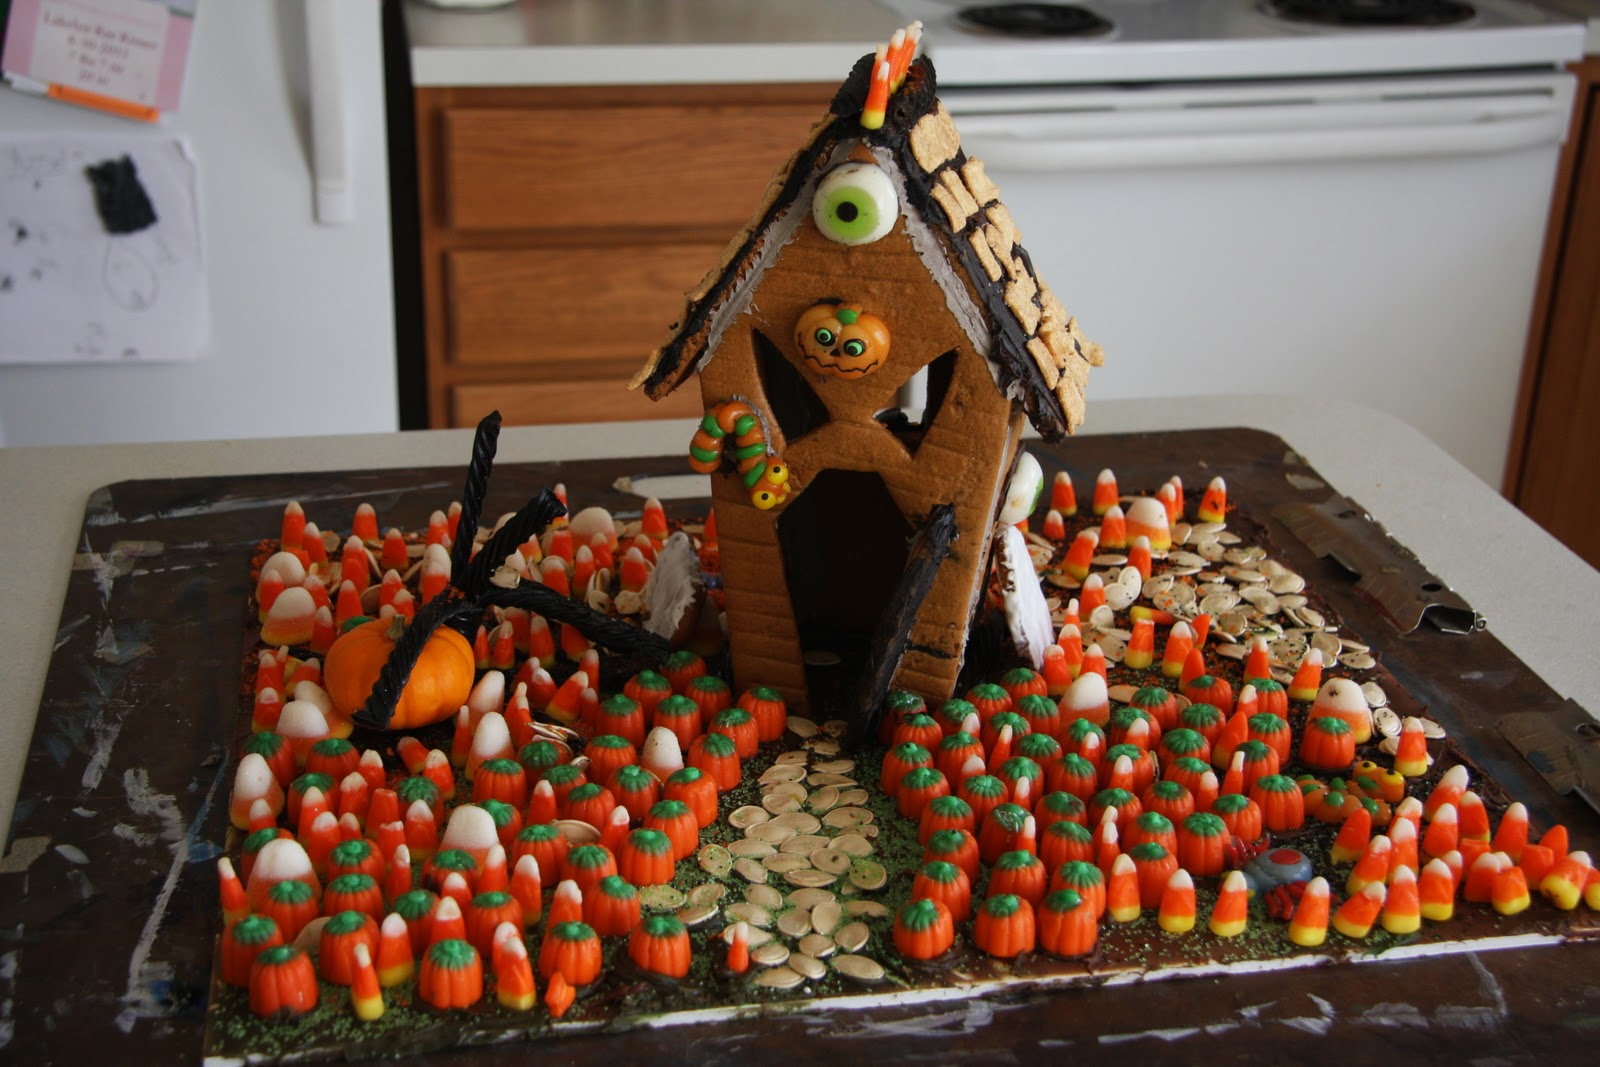 Gingerbread House Template Martha Stewart Here are the final houses!